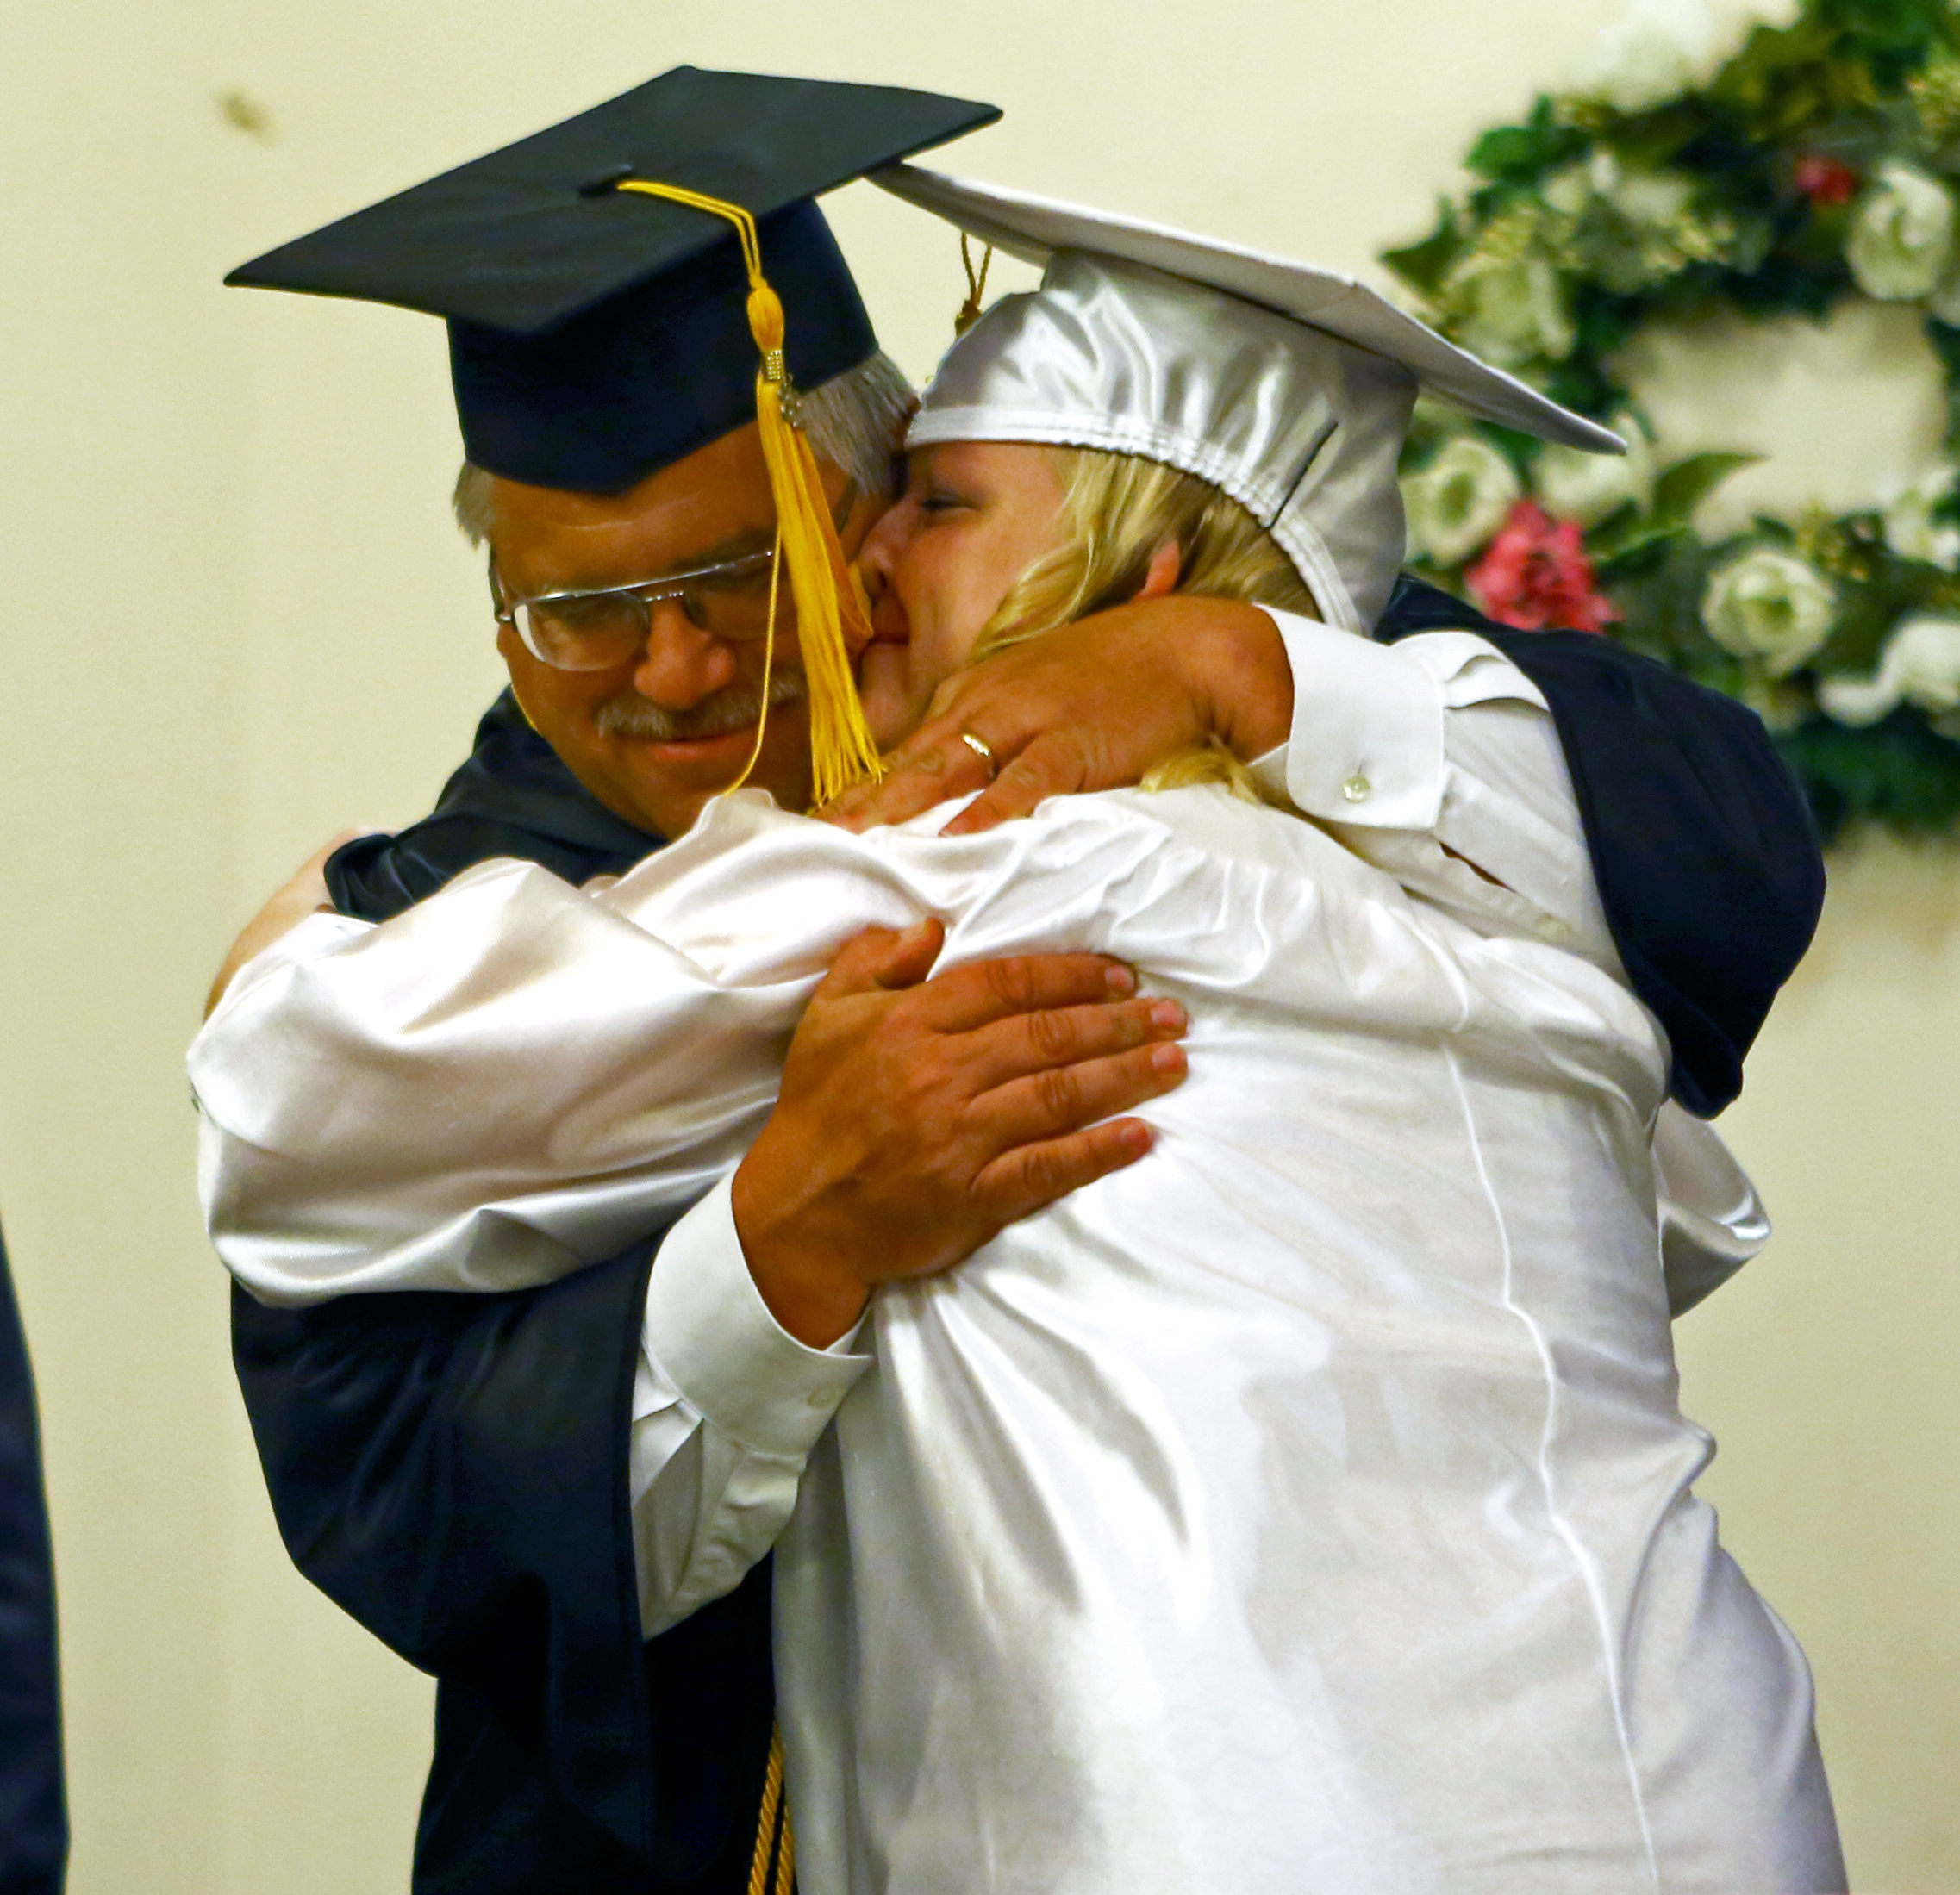 Centre County Christian Academy graduating senior Abby Maholic embraces her father and faculty member Robert Maholic after receiving her diploma during the commencement ceremony at Calvary Bible Church in Centre Hall on Friday, June 10, 2016.